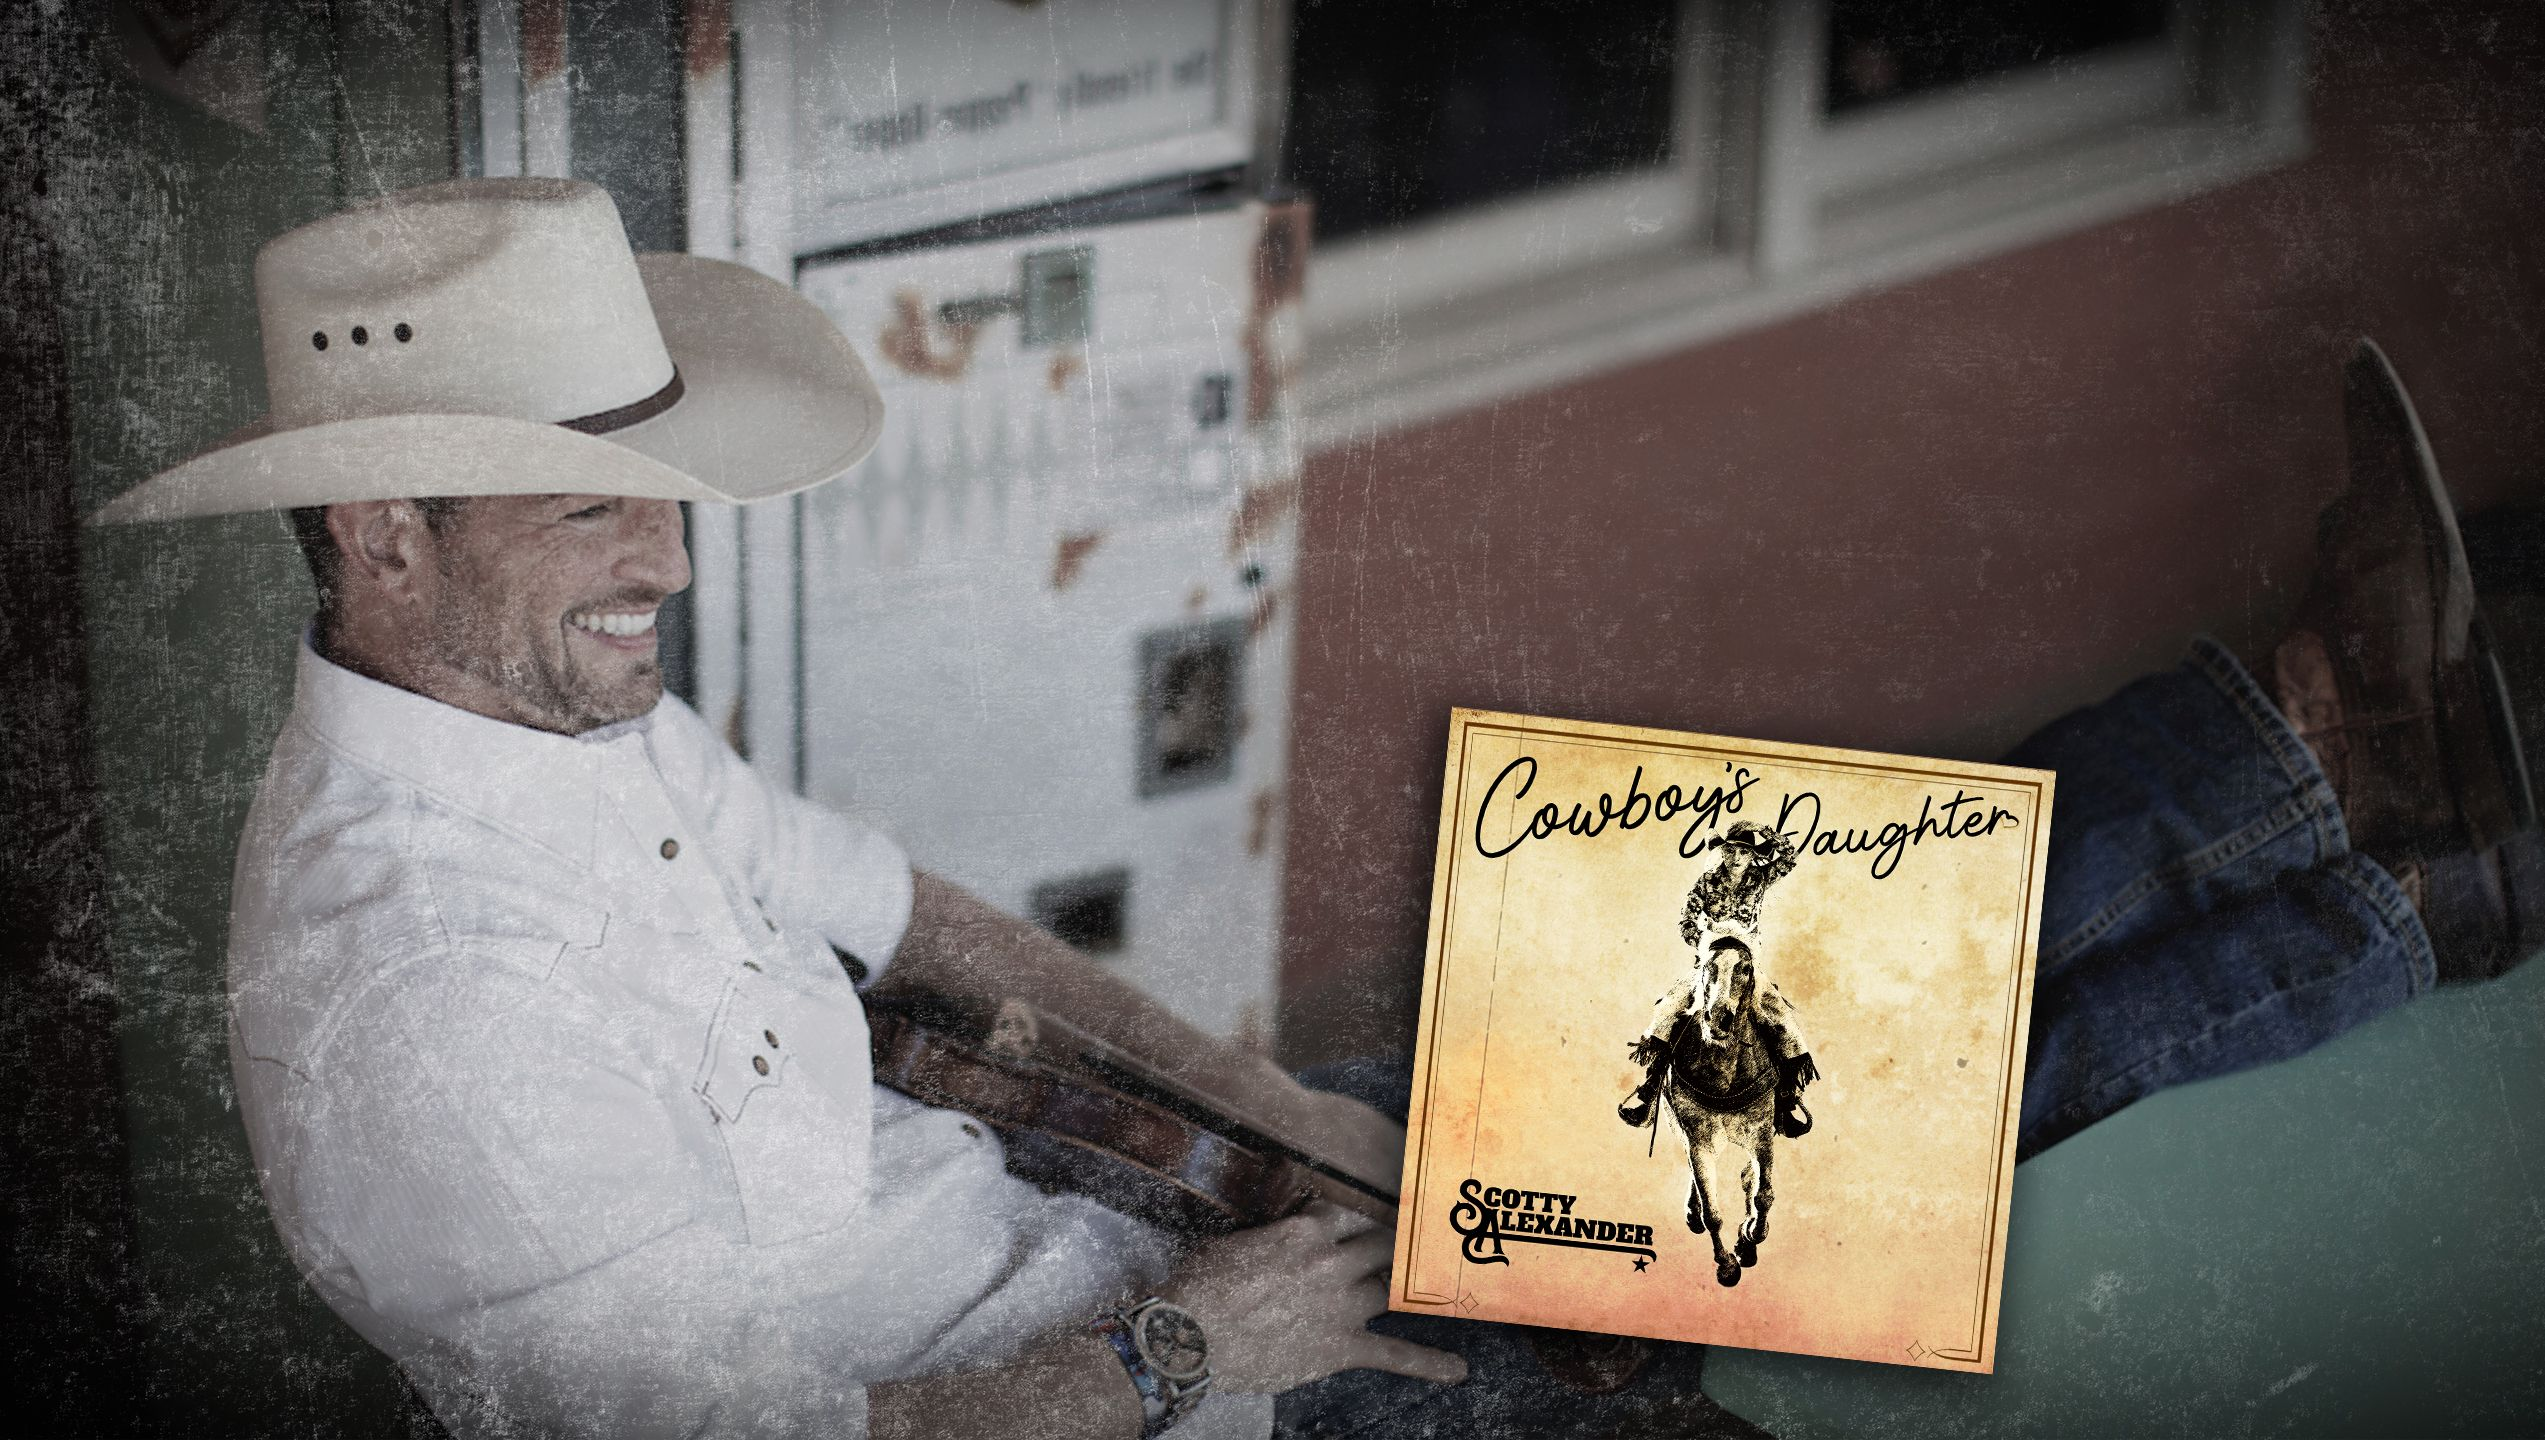 Cowboy's Daughter Video Premiere 12p CST Friday, December 18th